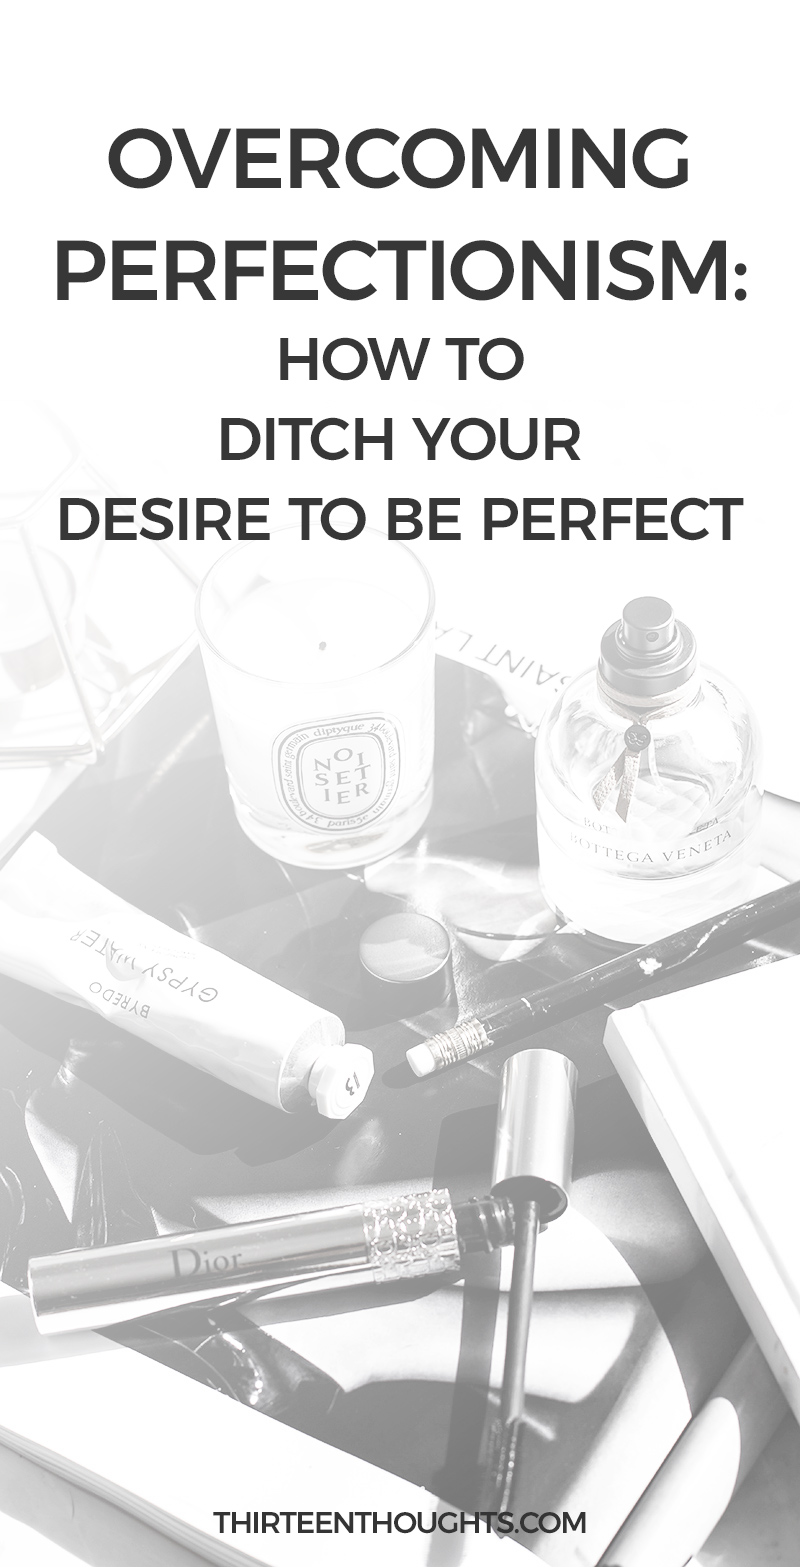 Overcoming Perfectionism: Ditch Your Desire To Be Perfect